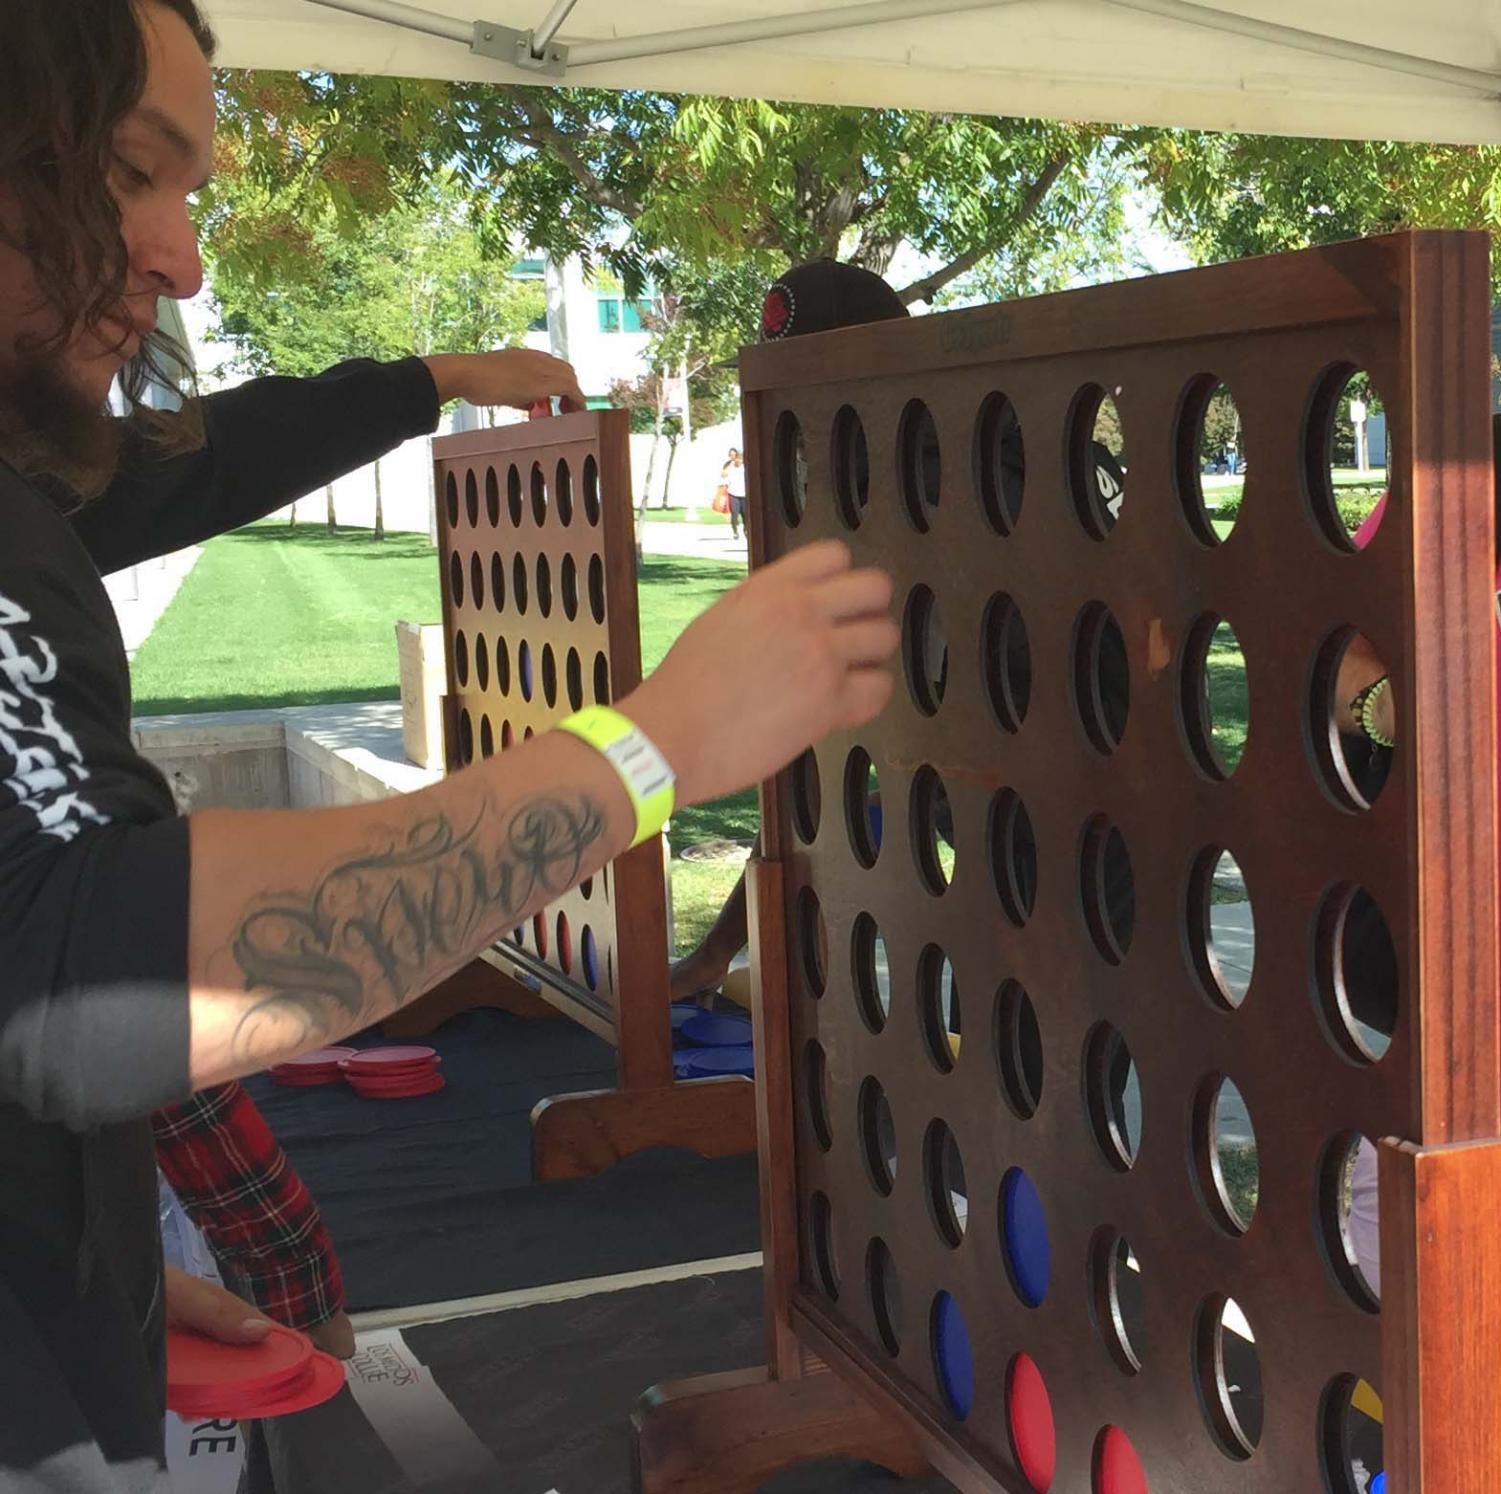 Los Medanos College student Chris Melgar tries his luck playing on a giant Connect Four game board made of wood at the EOPS 50th anniversary celebration Tuesday, Oct. 1.